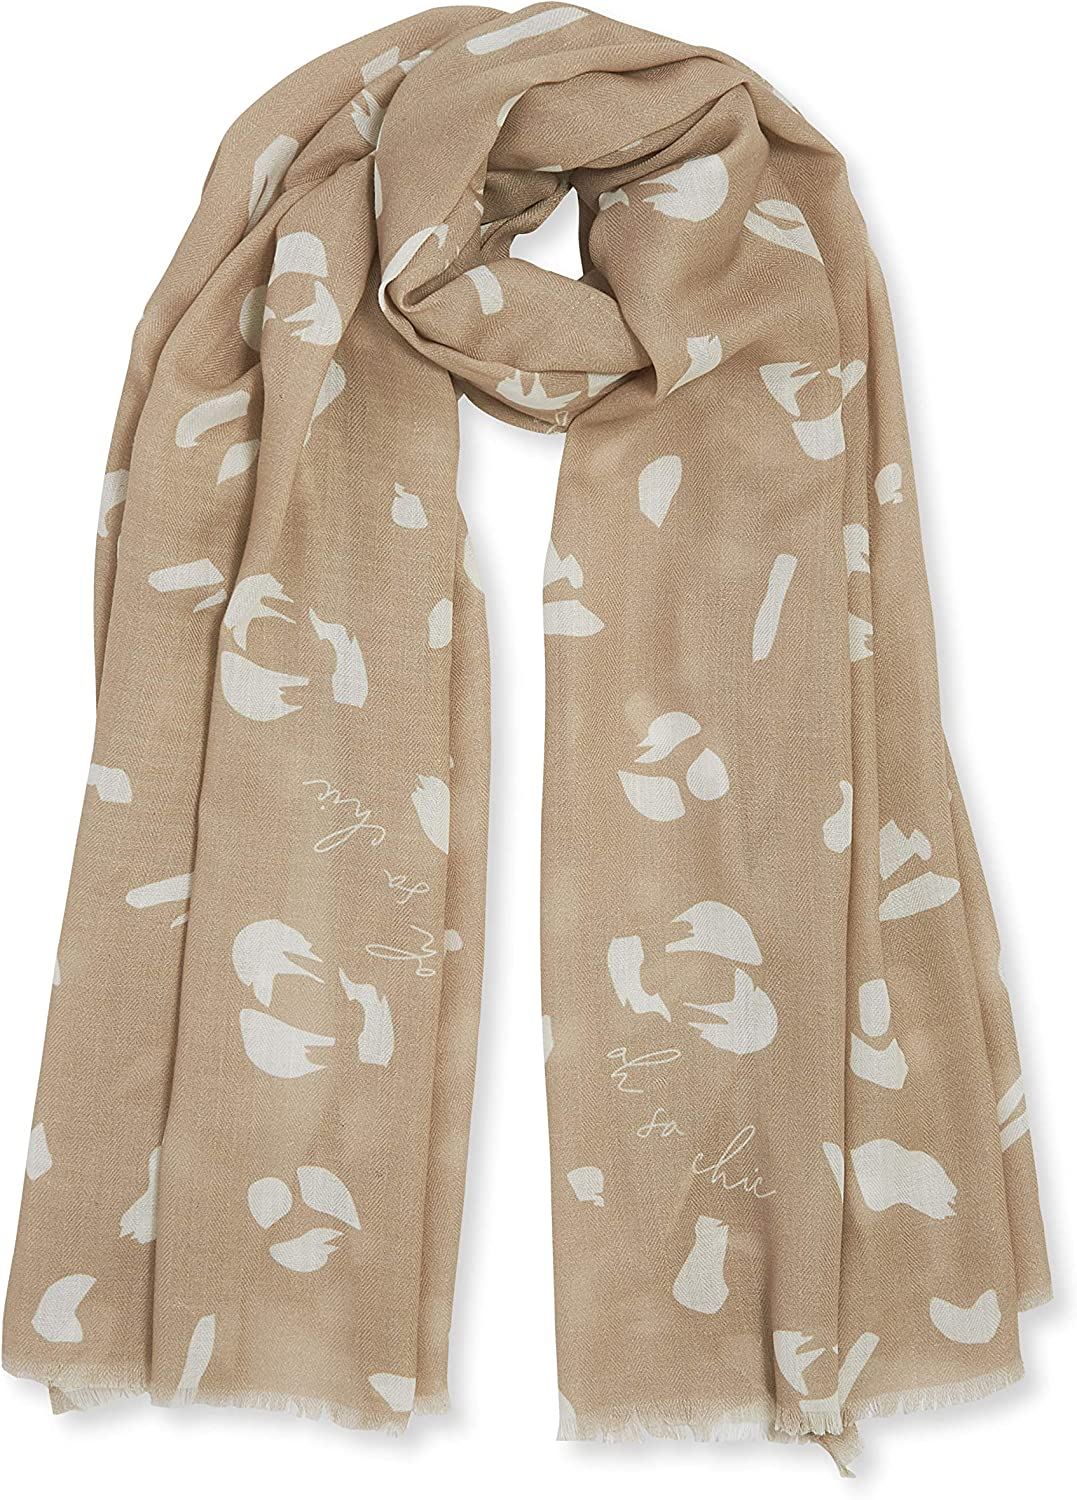 Katie Loxton Oh So Chic Womens One Size Fits Most Fashion Sentiment Scarf in Taupe